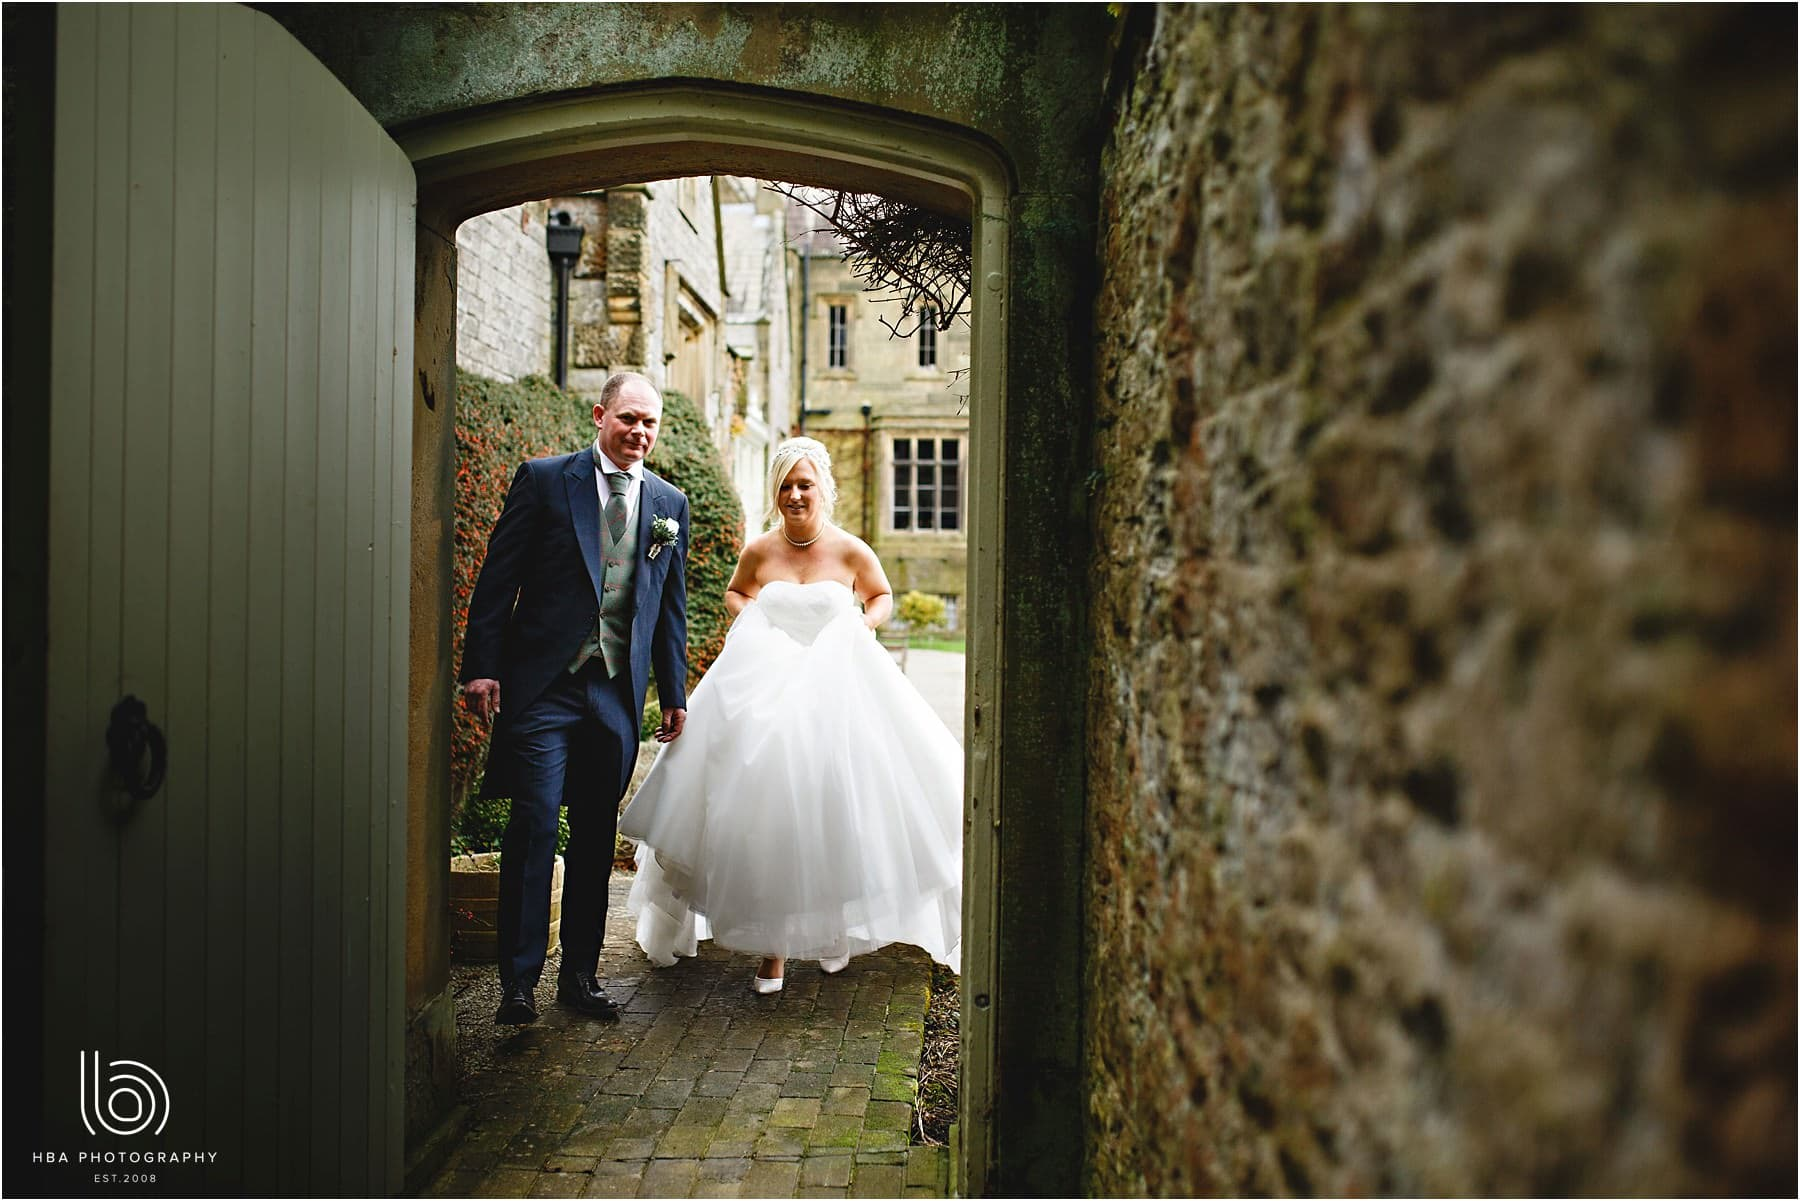 The bride and groom walking through an archway